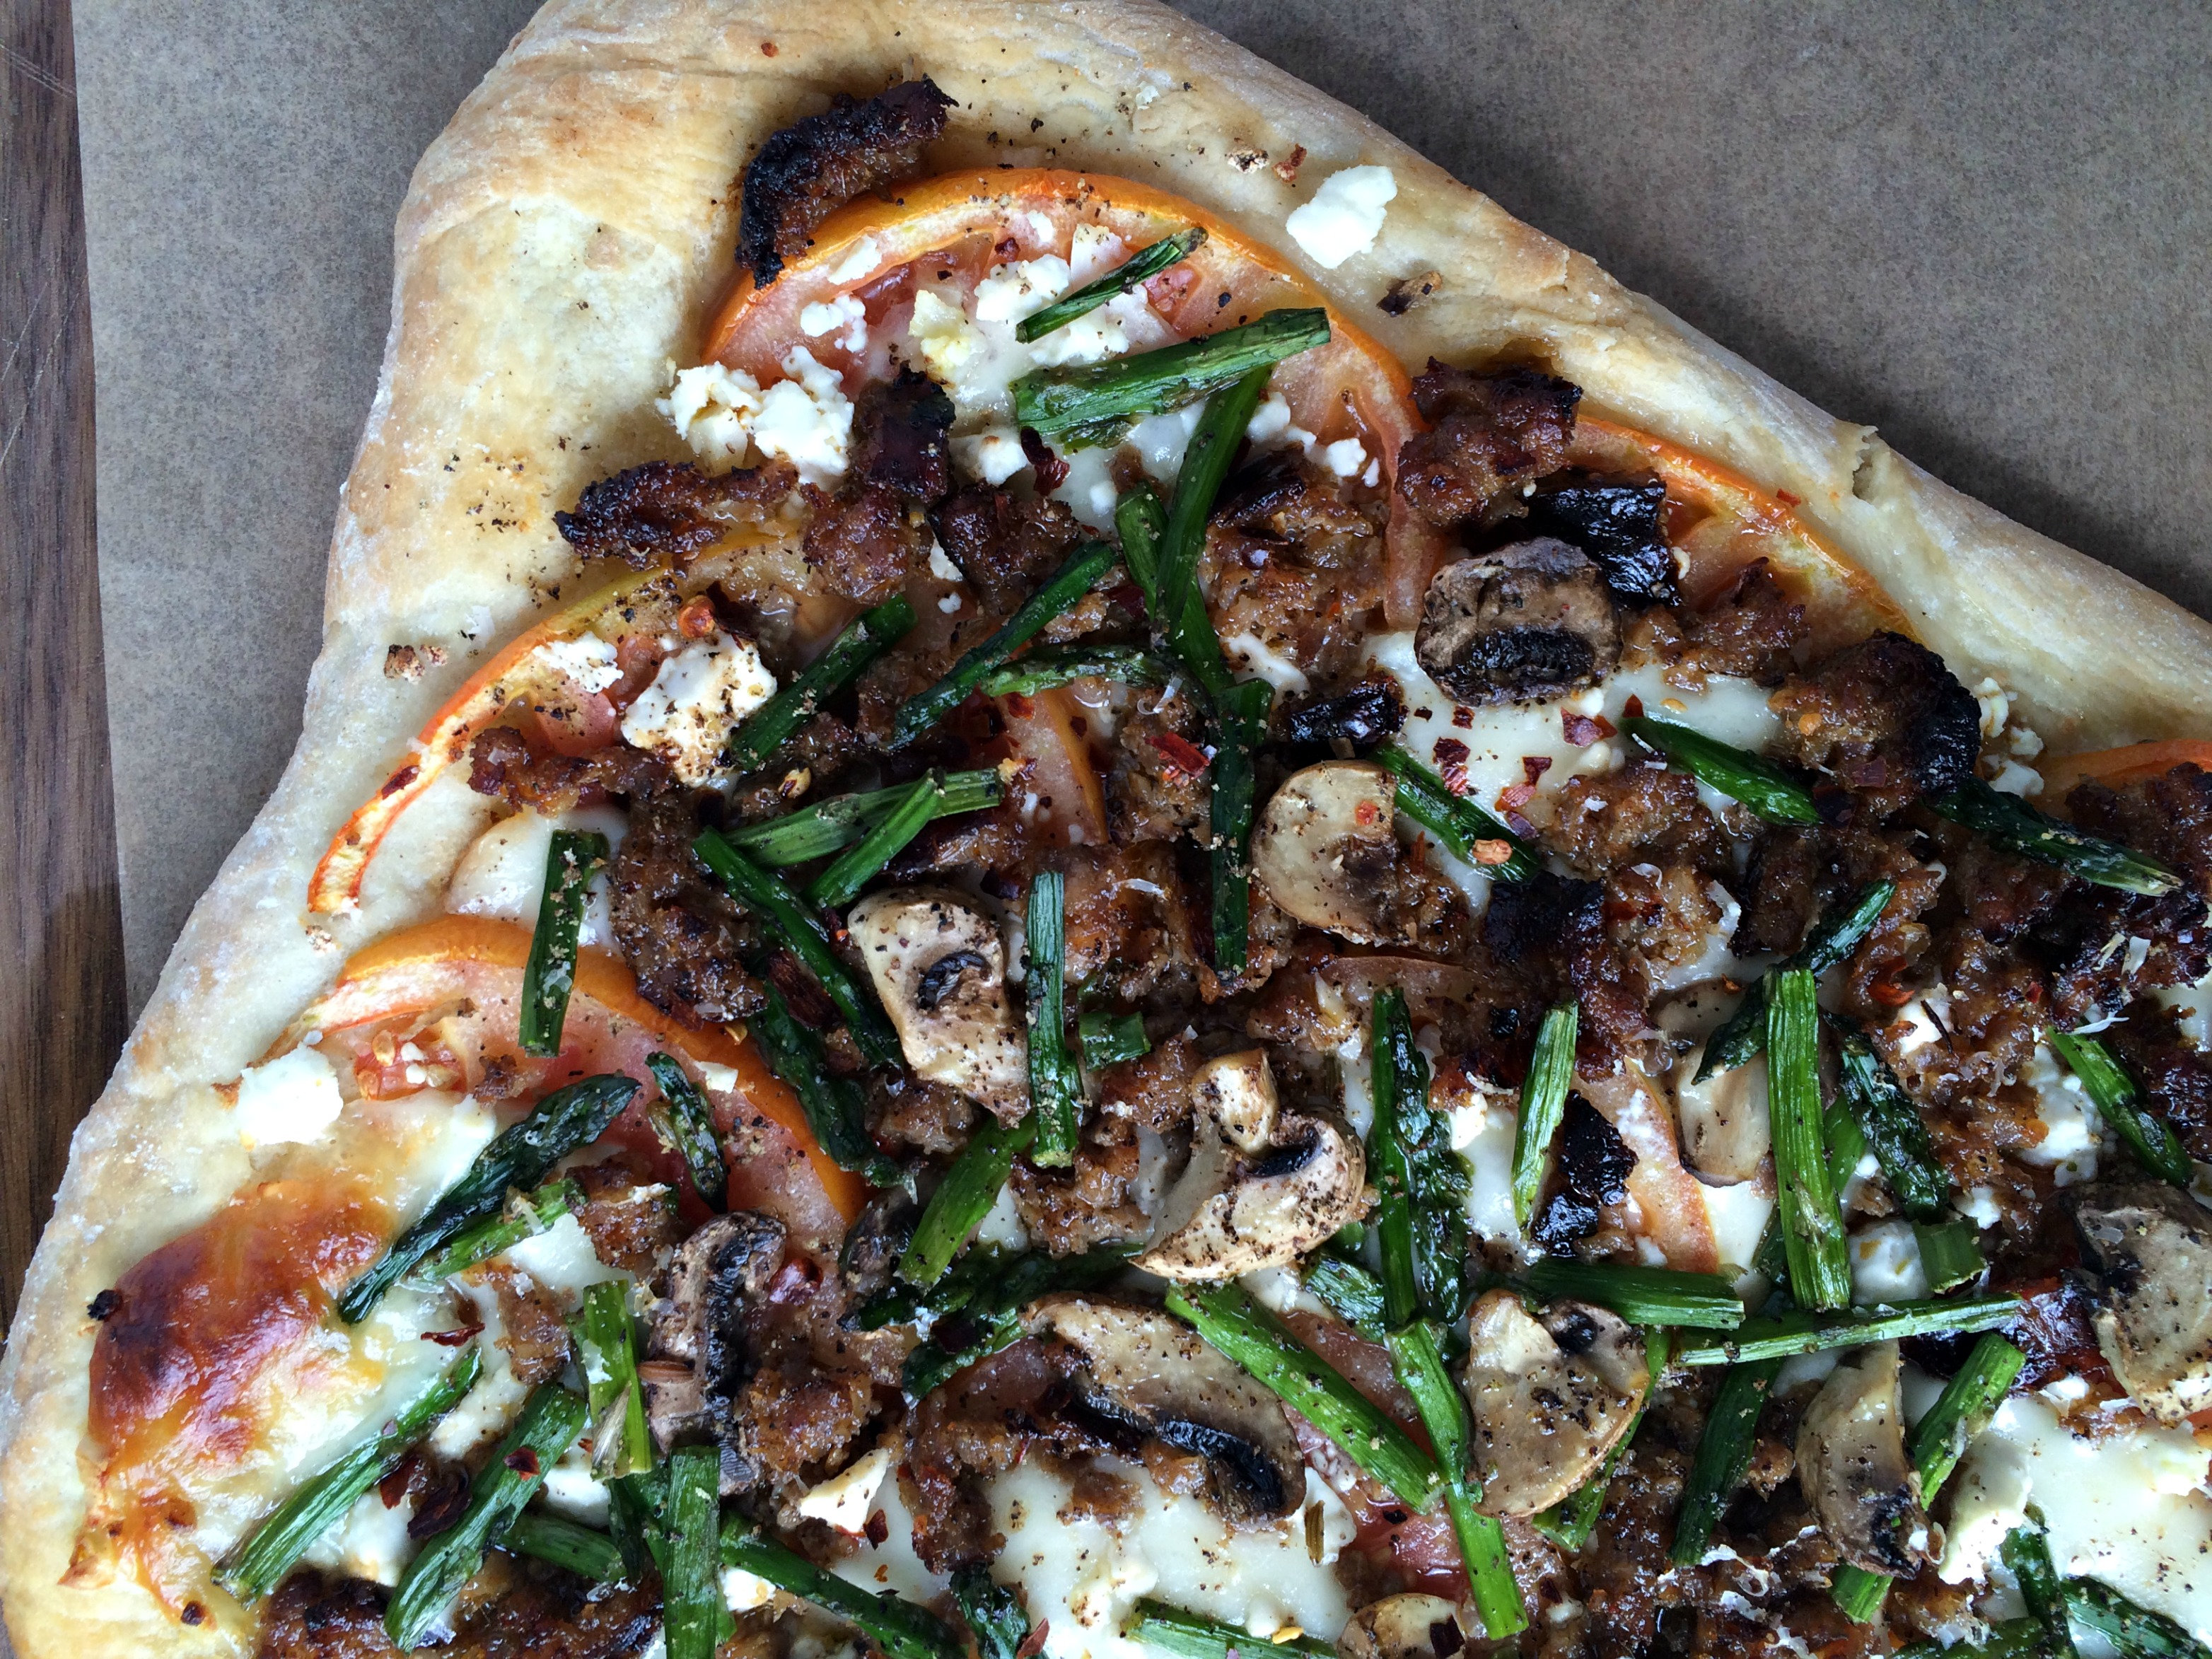 Asparagus Mushroom Sausage Pizza With Balsamic Glaze